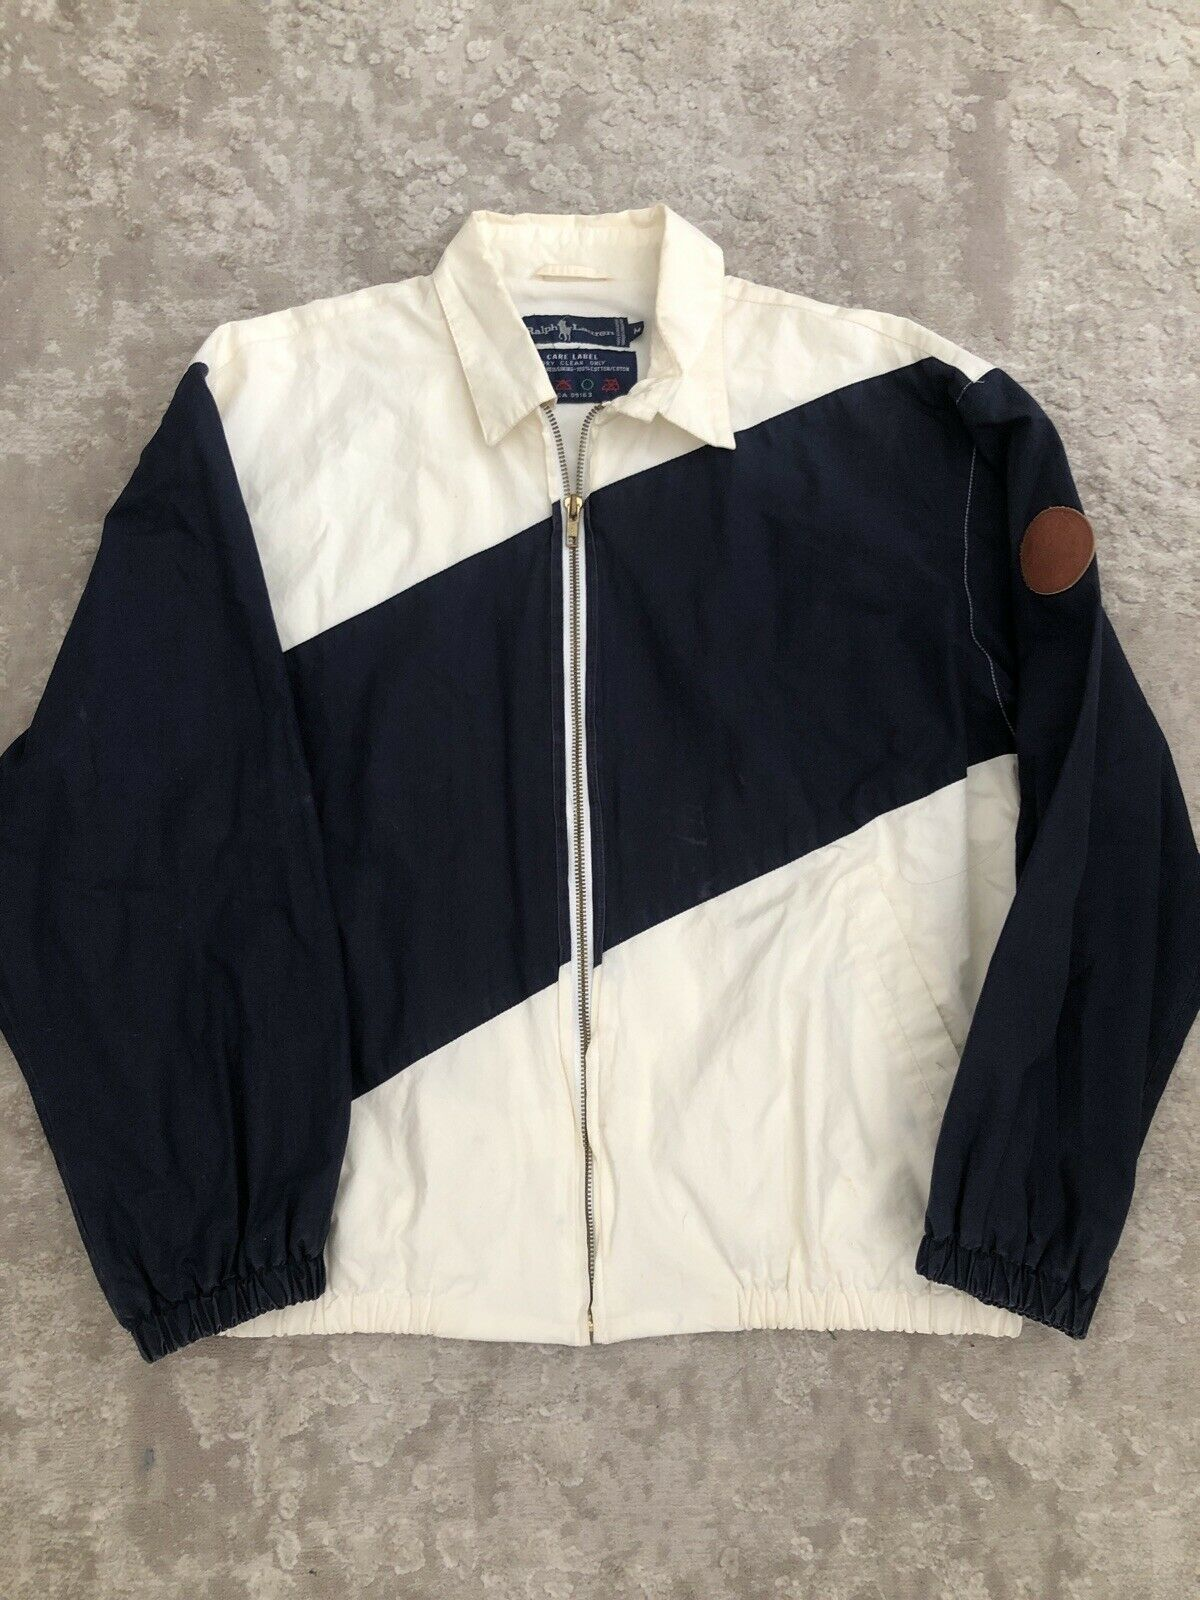 GRAIL! VTG POLO RALPH LAUREN GRAPHIC WING 1992 Wi… - image 2